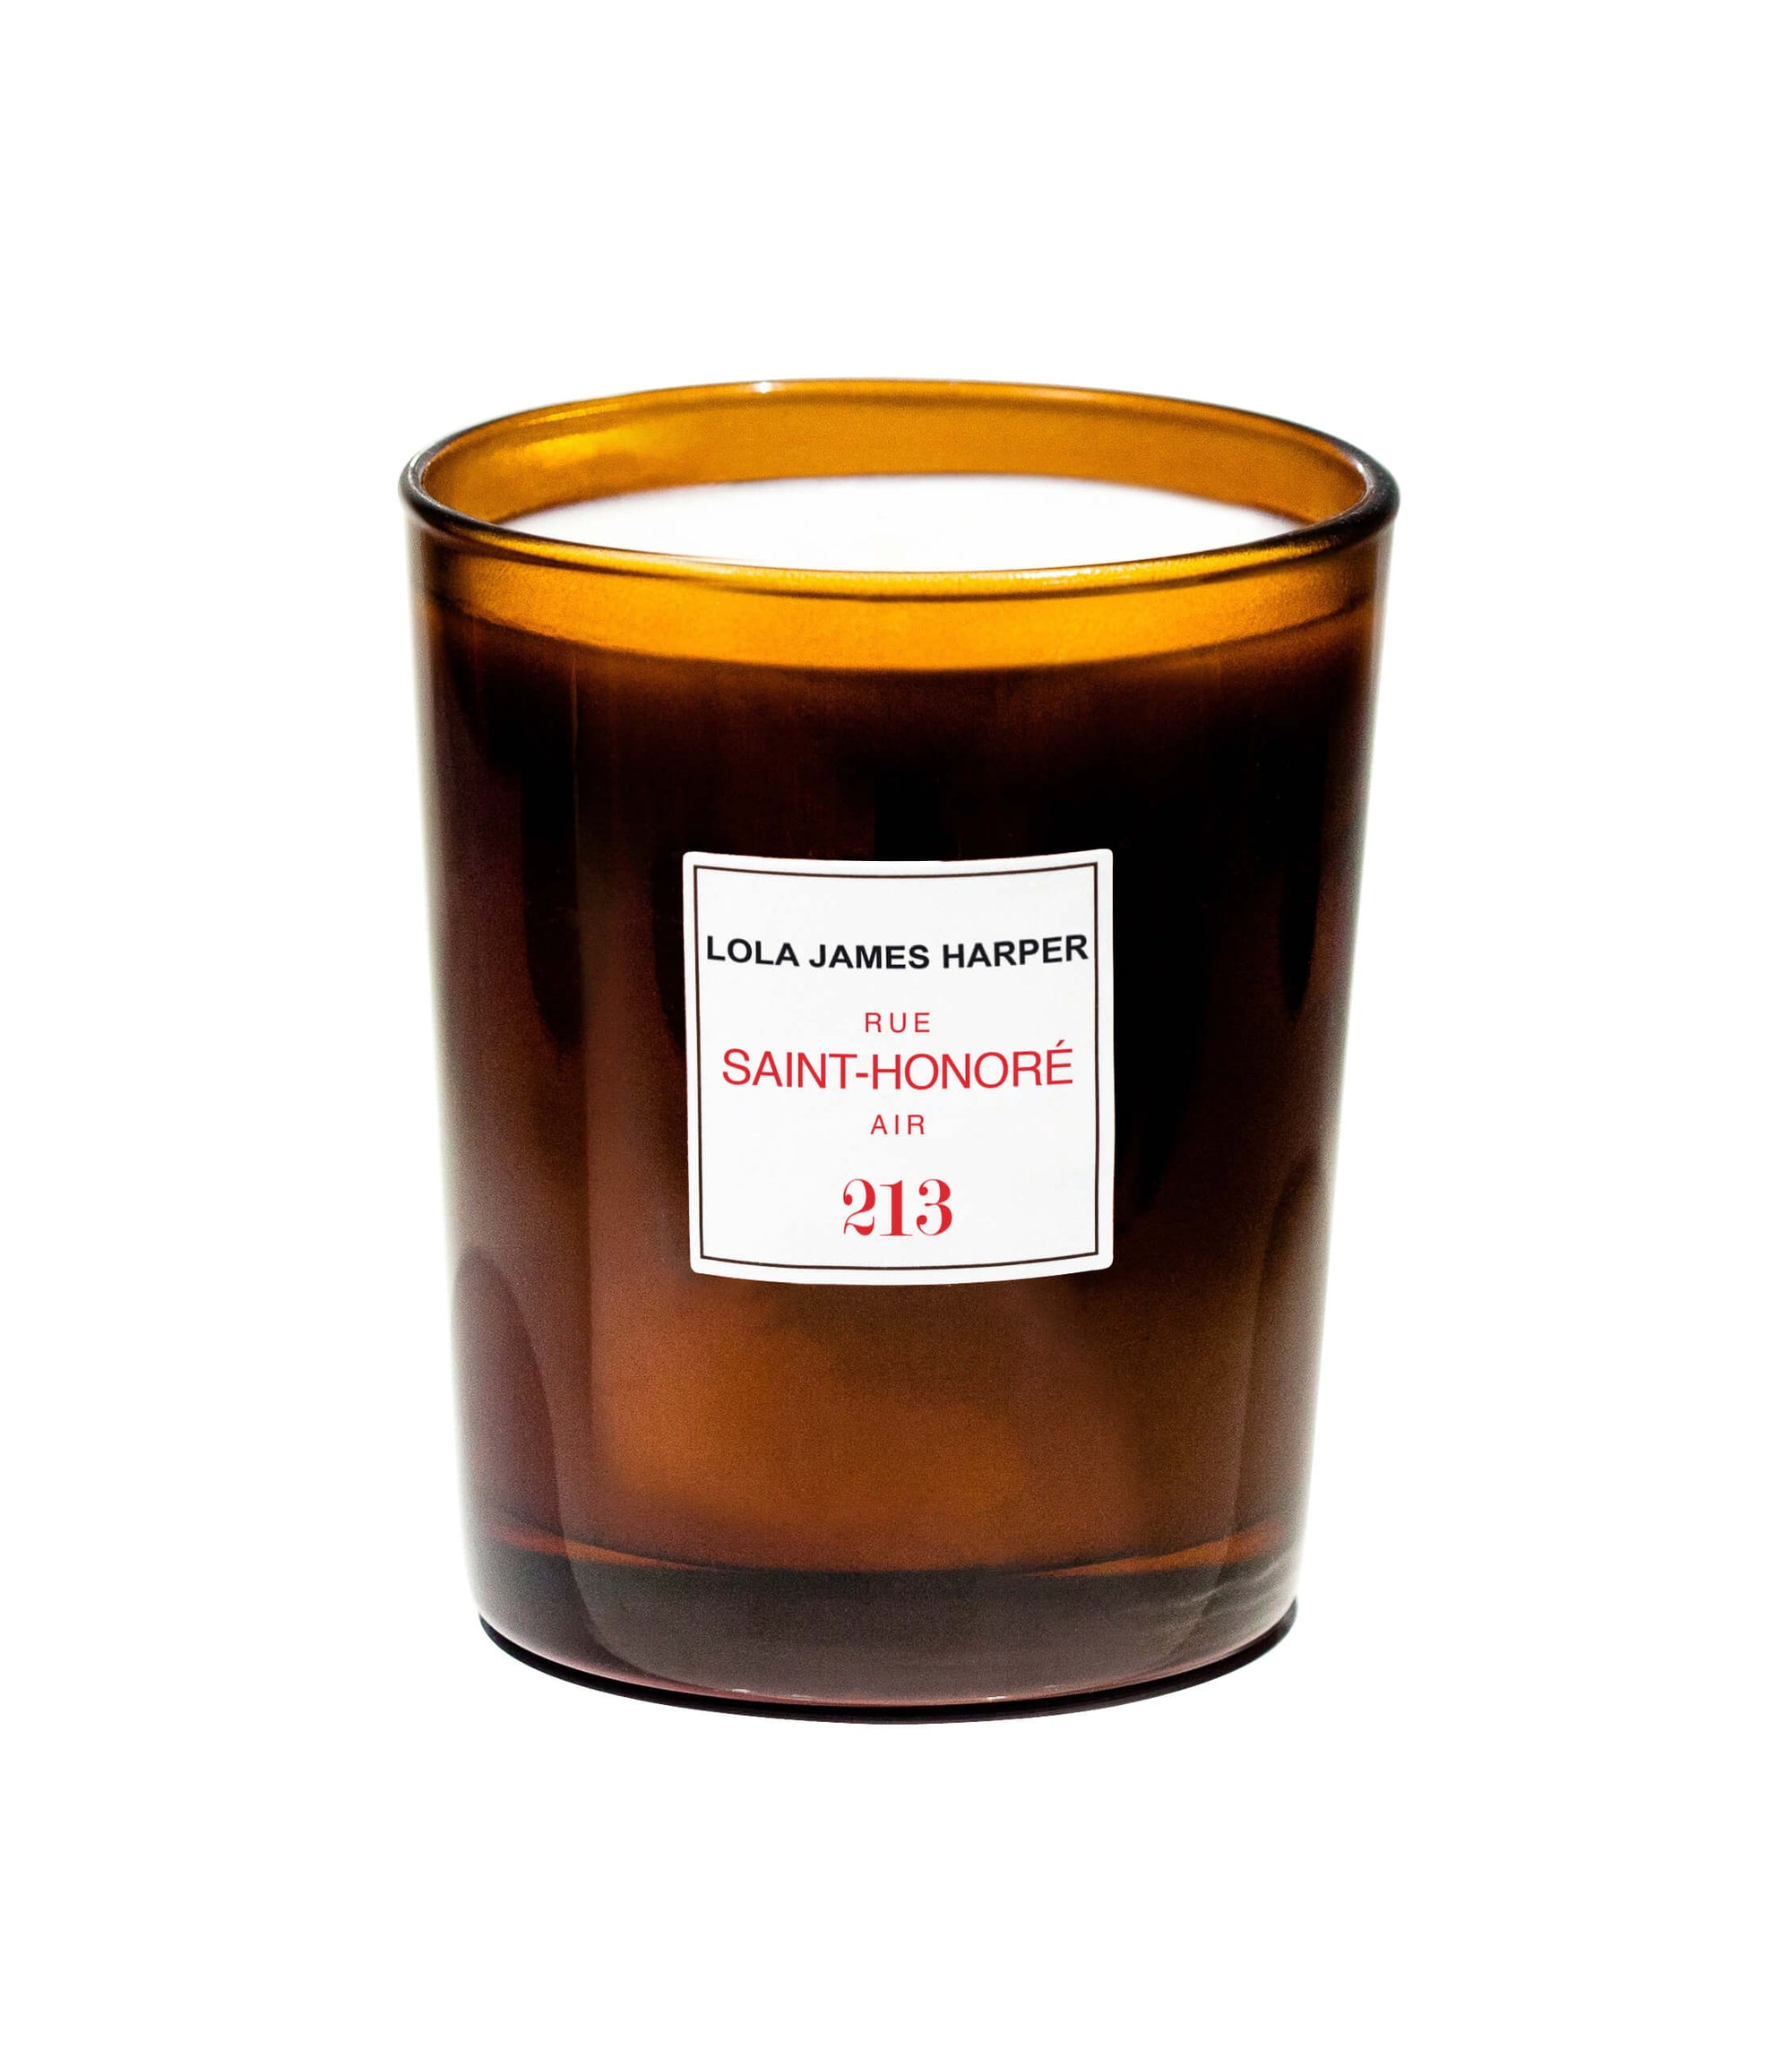 LOLA JAMES HARPER - 213 RUE SAINT-HONORE AIR - 190G CANDLE